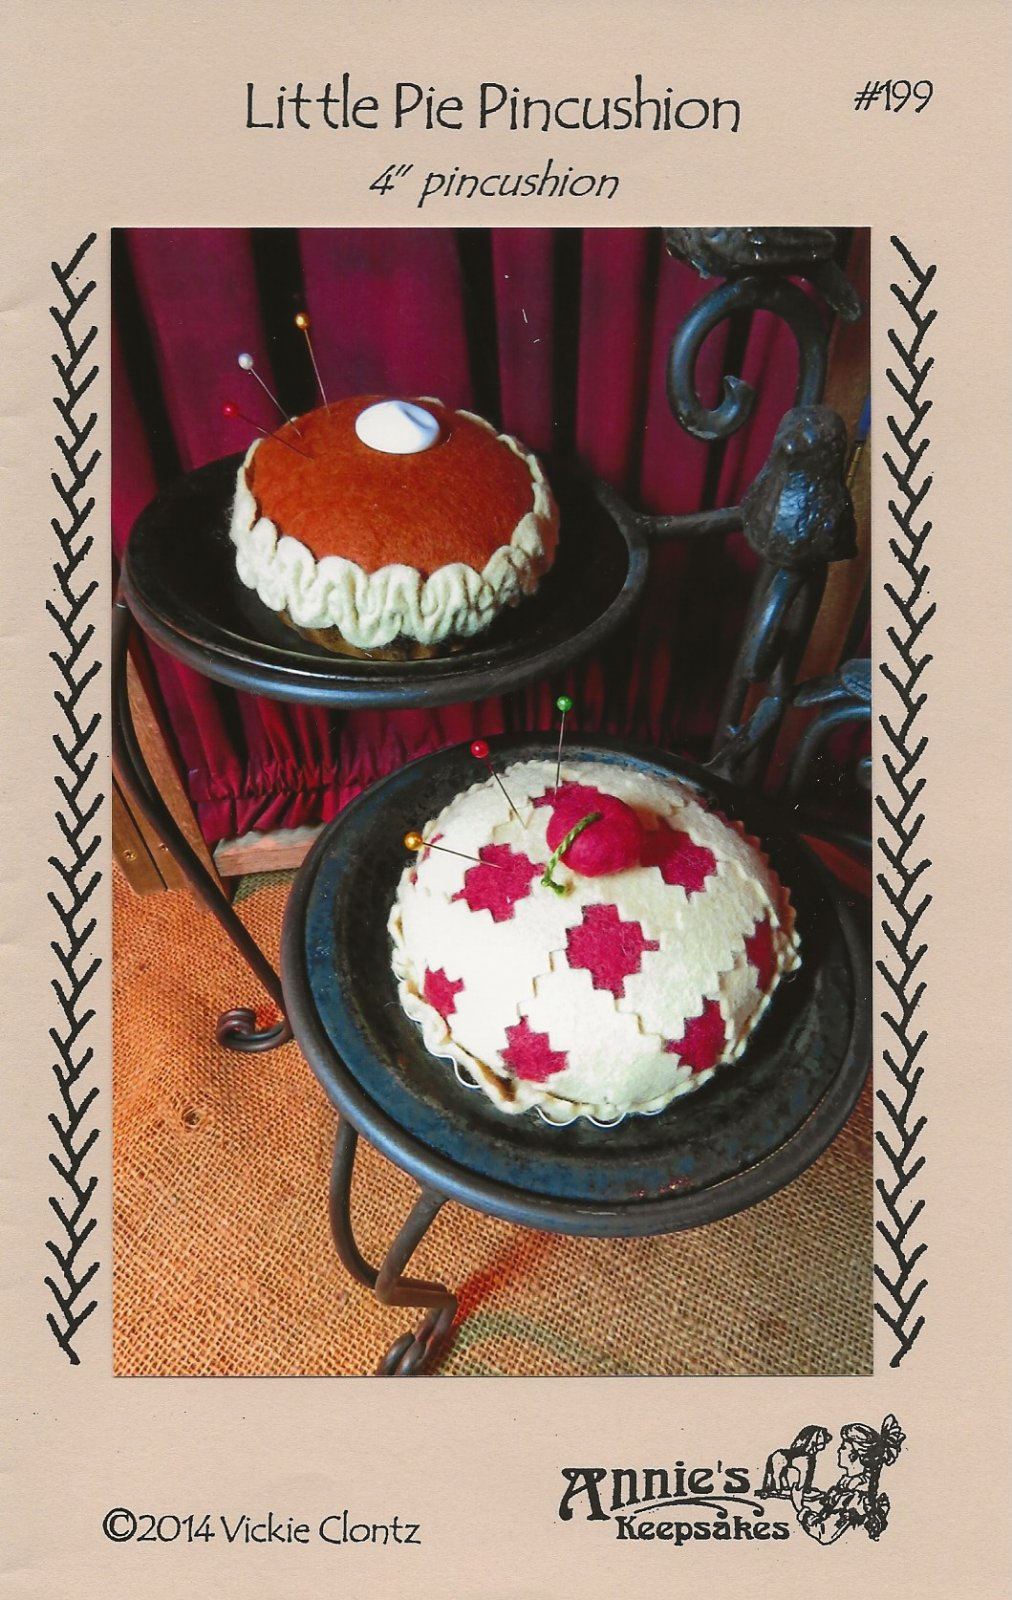 Little Pie Pincushion